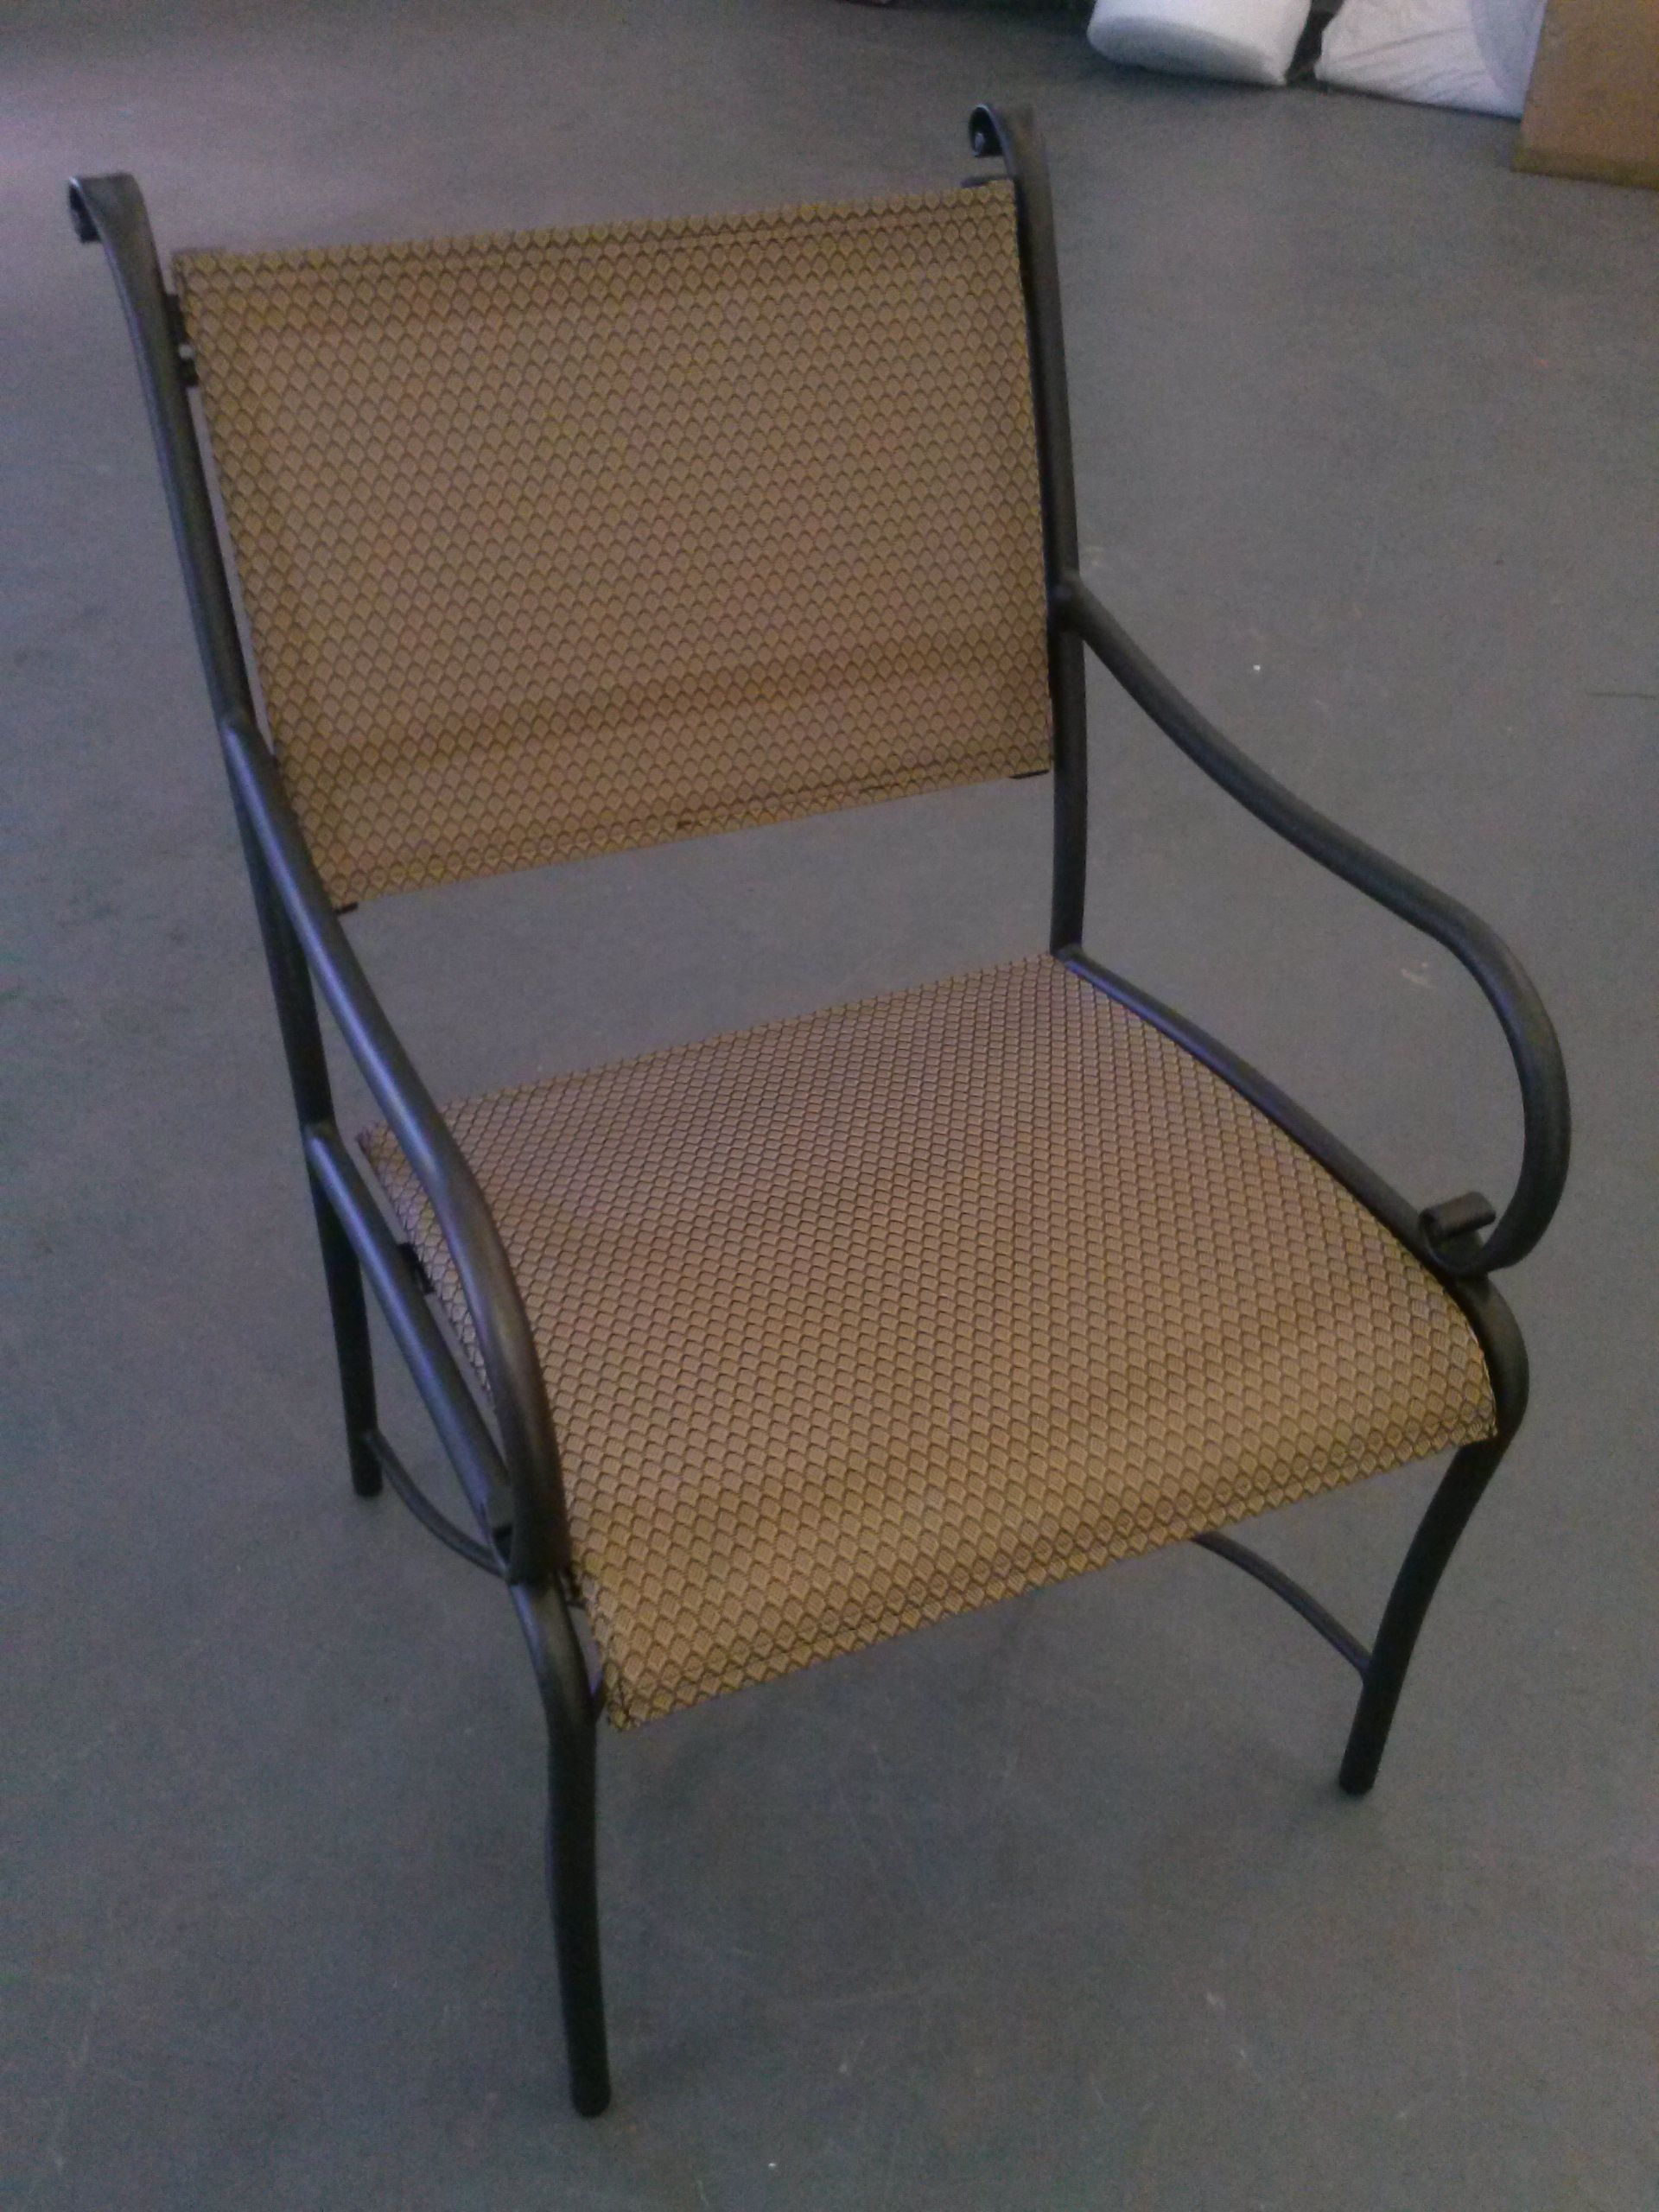 Repaired Outdoor Chair With New Sling And Powder Coating